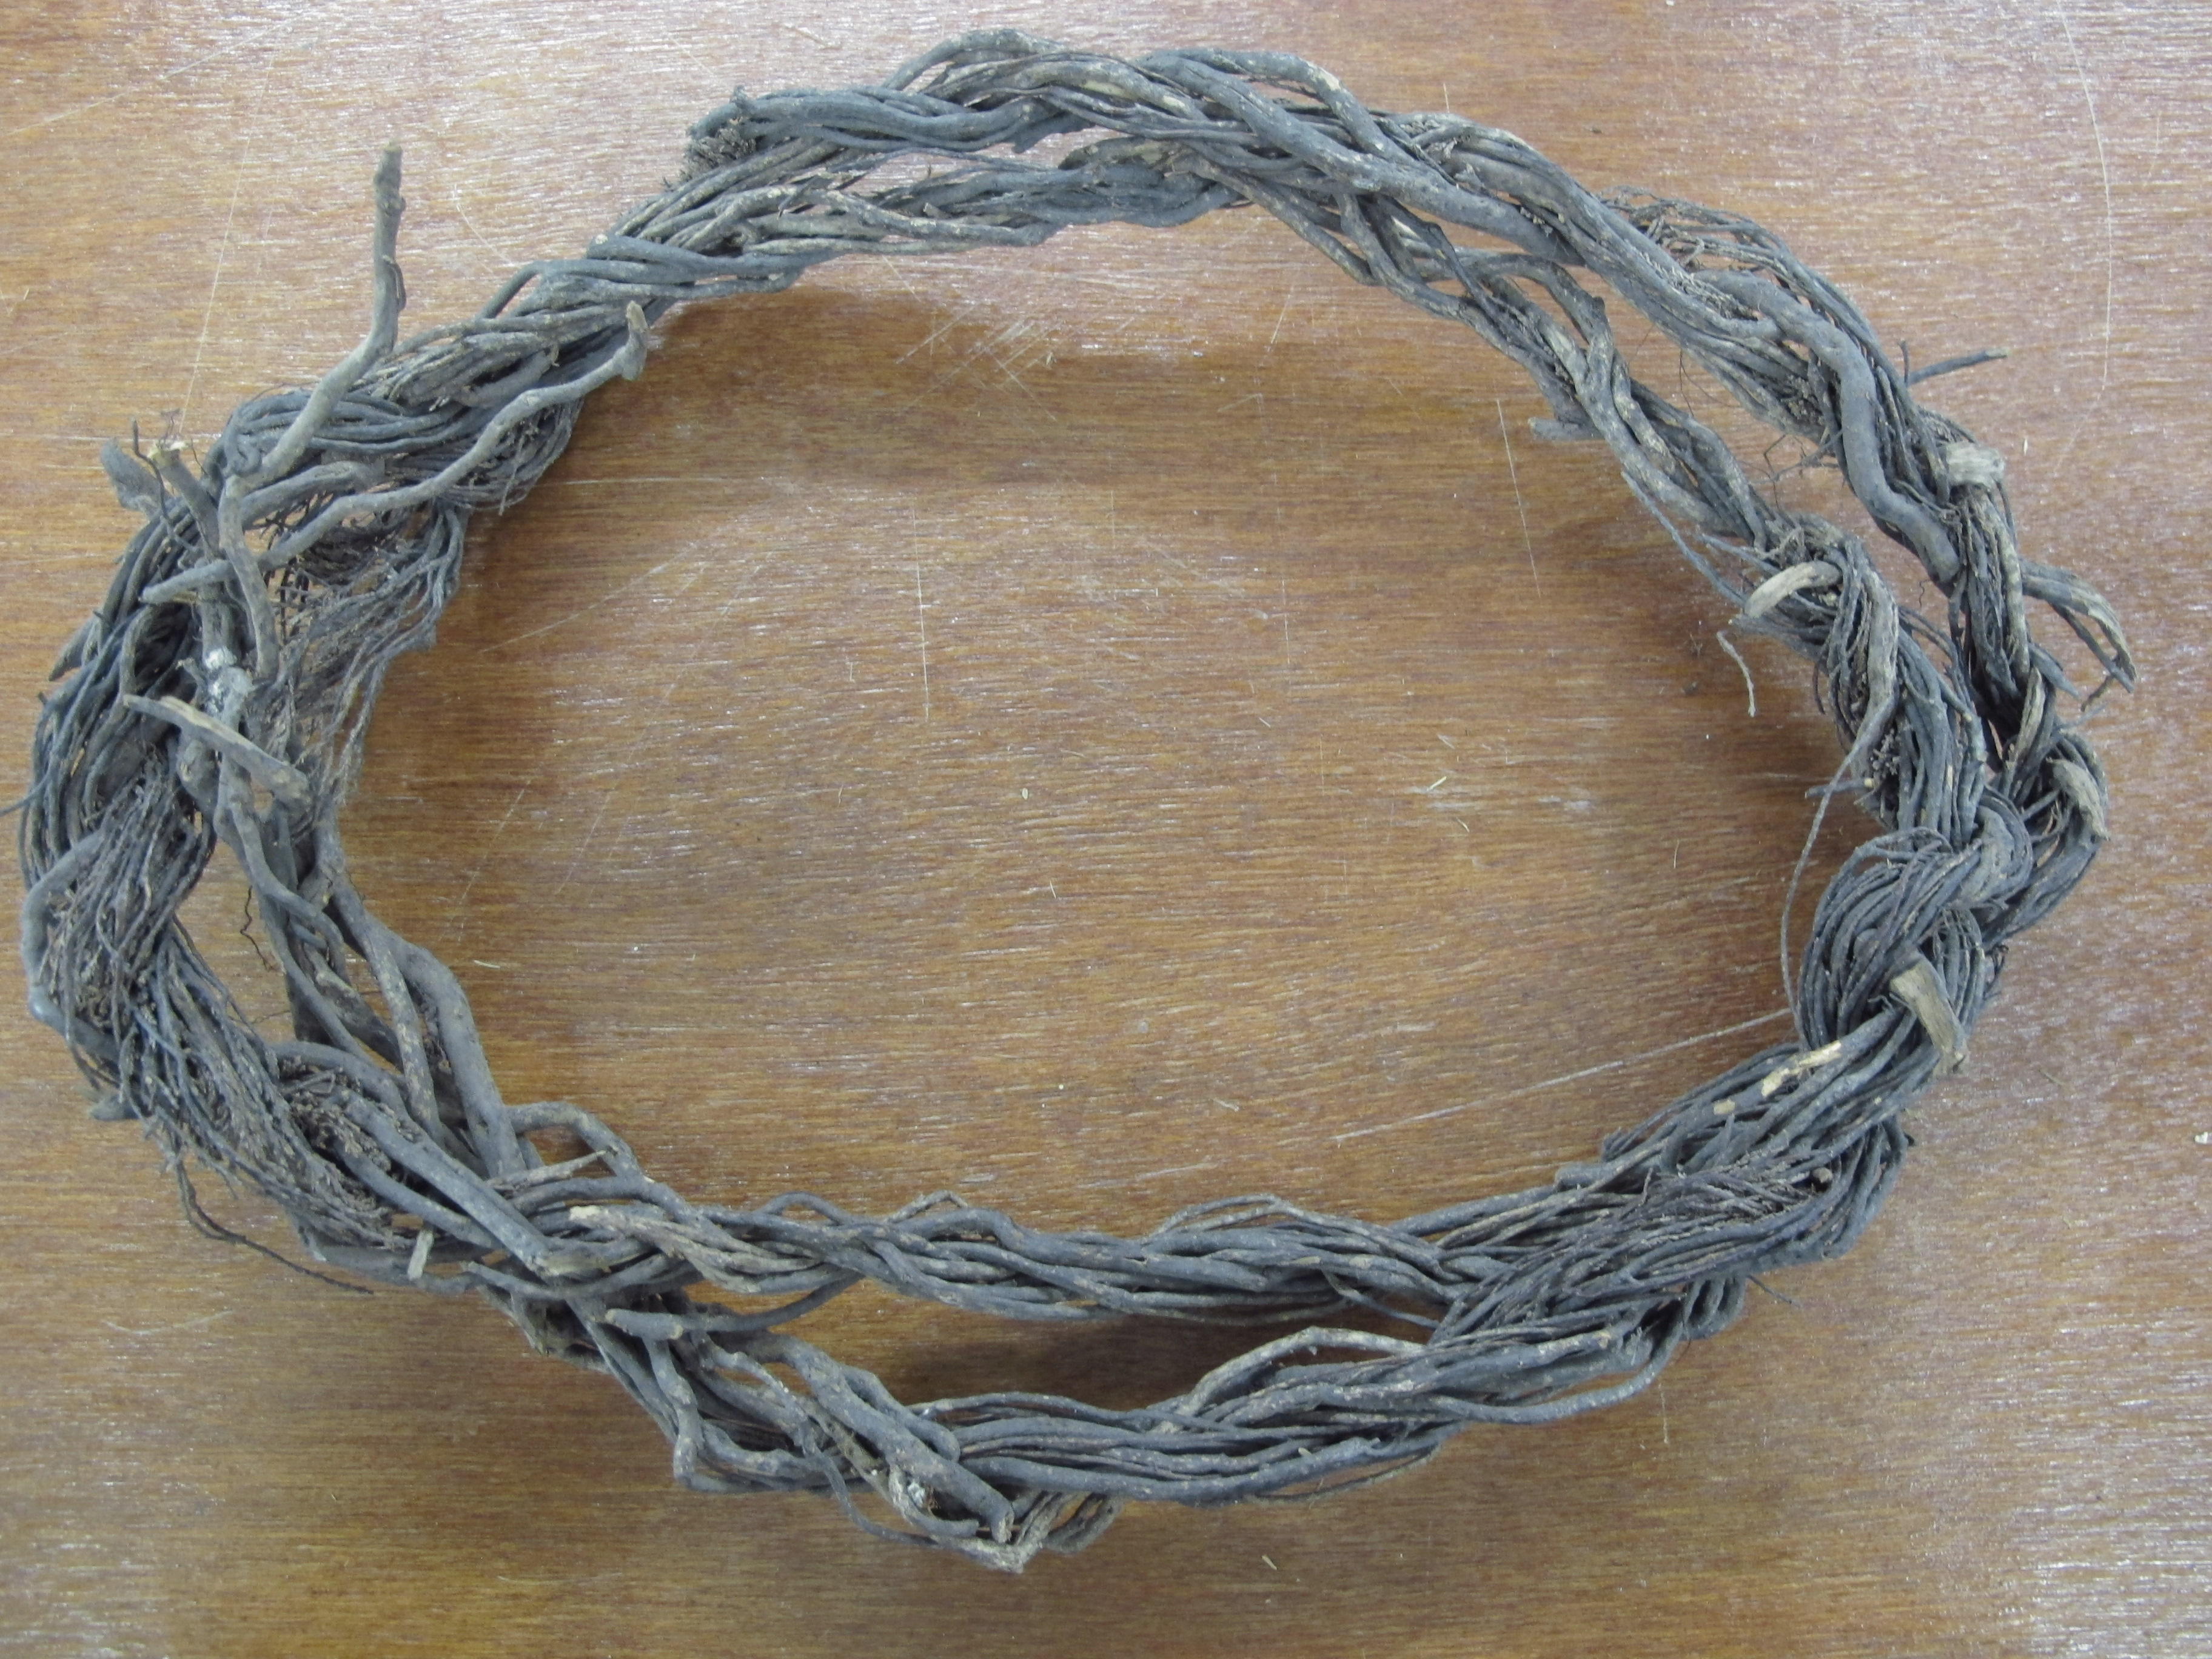 Notes On Heather Use In Basket Making Woven Communities